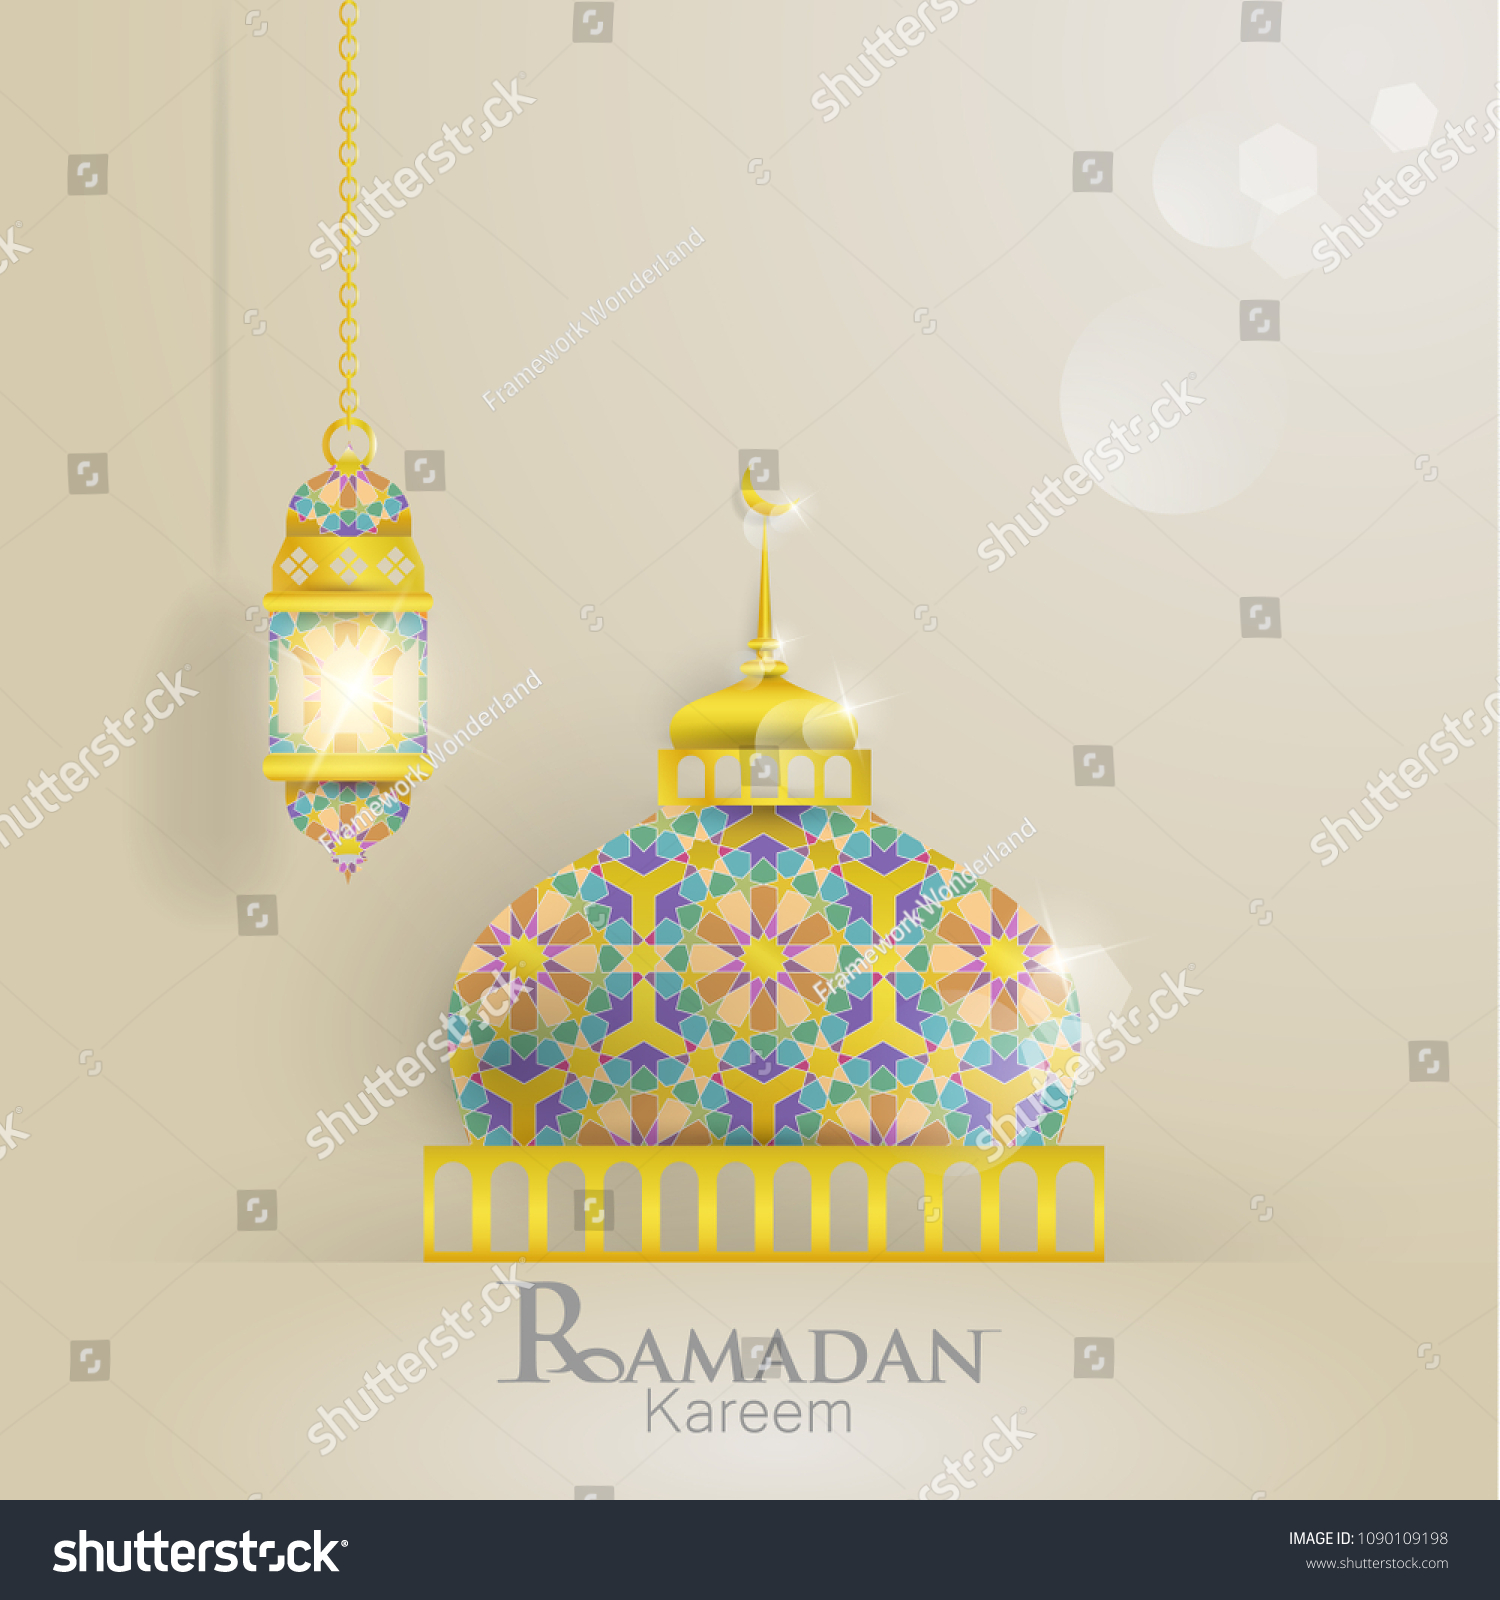 Dome Shape Mosque Islamic Geometric Ornament Stock Vector 1090109198